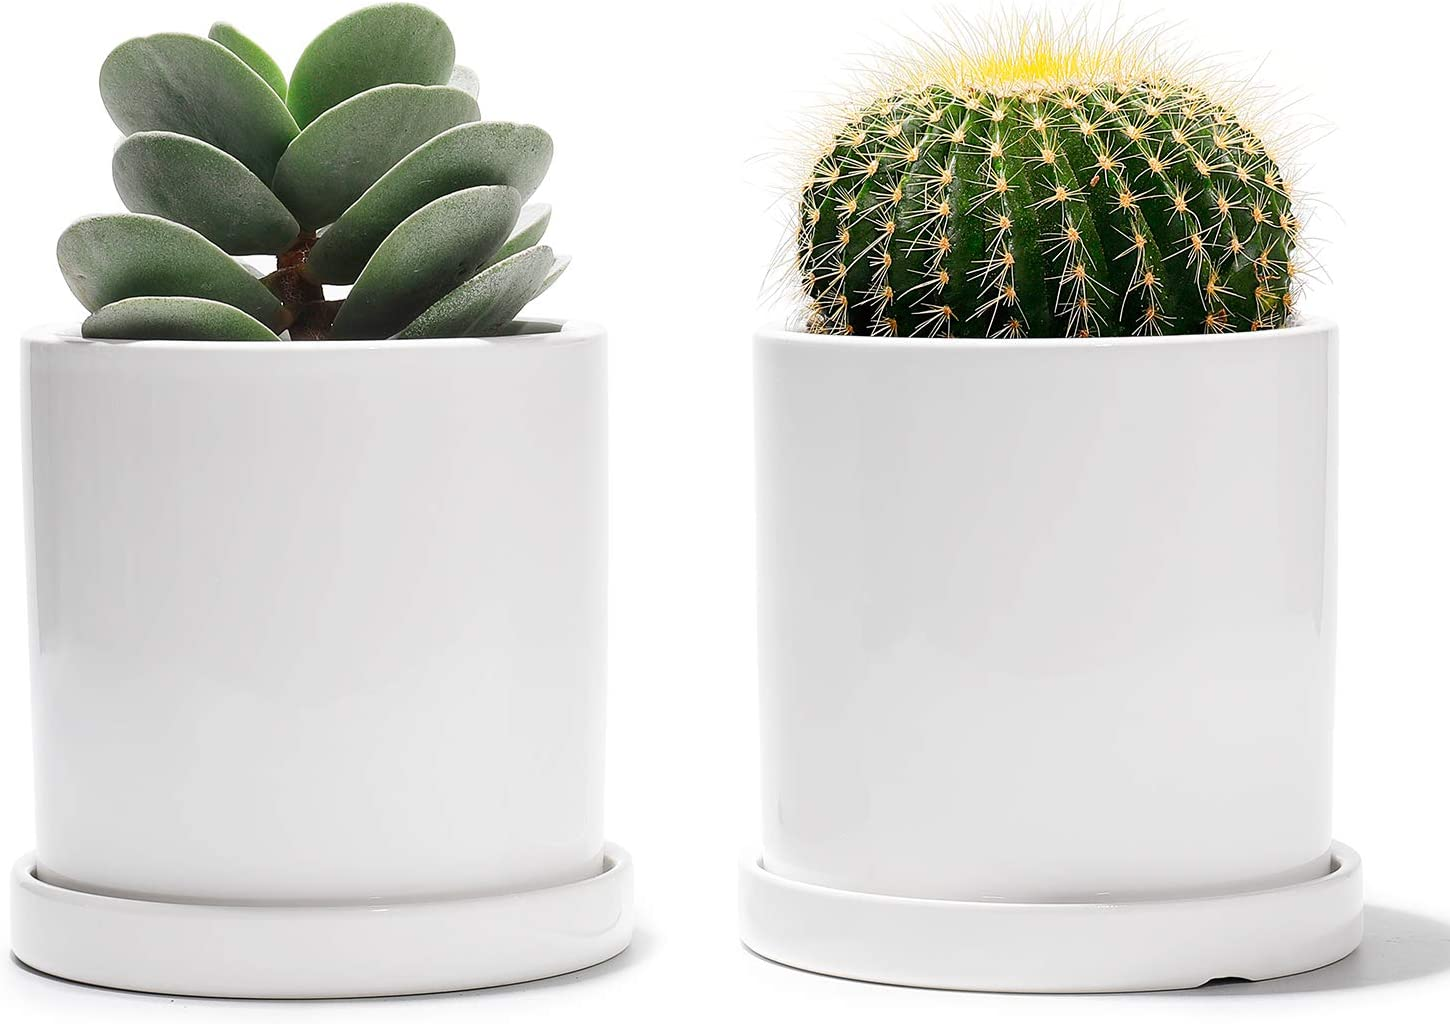 Potey Ceramic Plant Pots with Saucers – 3.8 Flower Planter Indoor with Drainage Medium Container Minimalism Round – Set of 2, Pure White